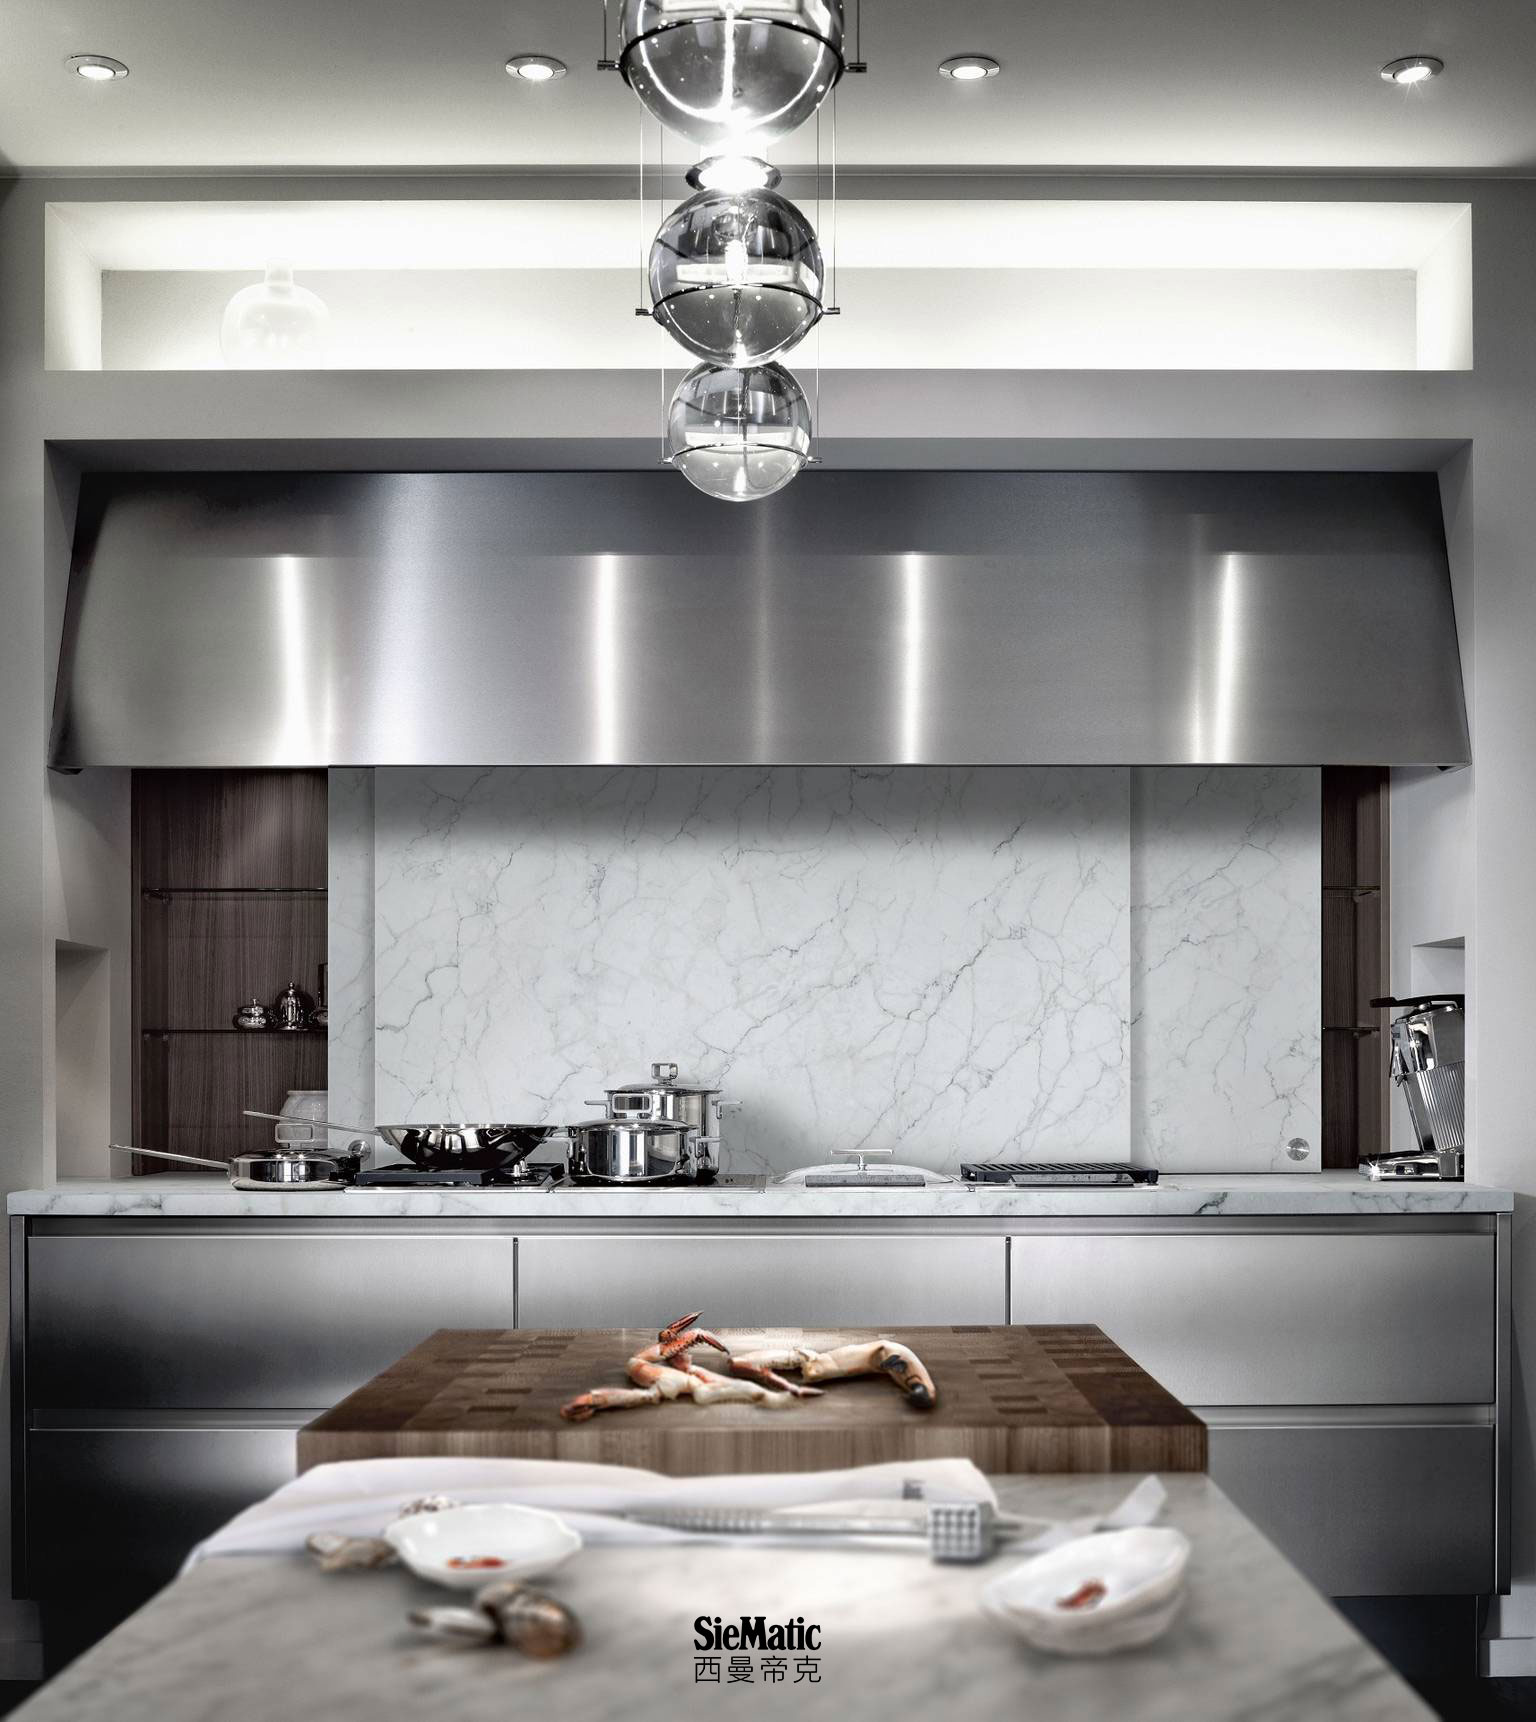 SieMatic BeauxArts from the Classic style collection with countertop and backsplash in bright marble